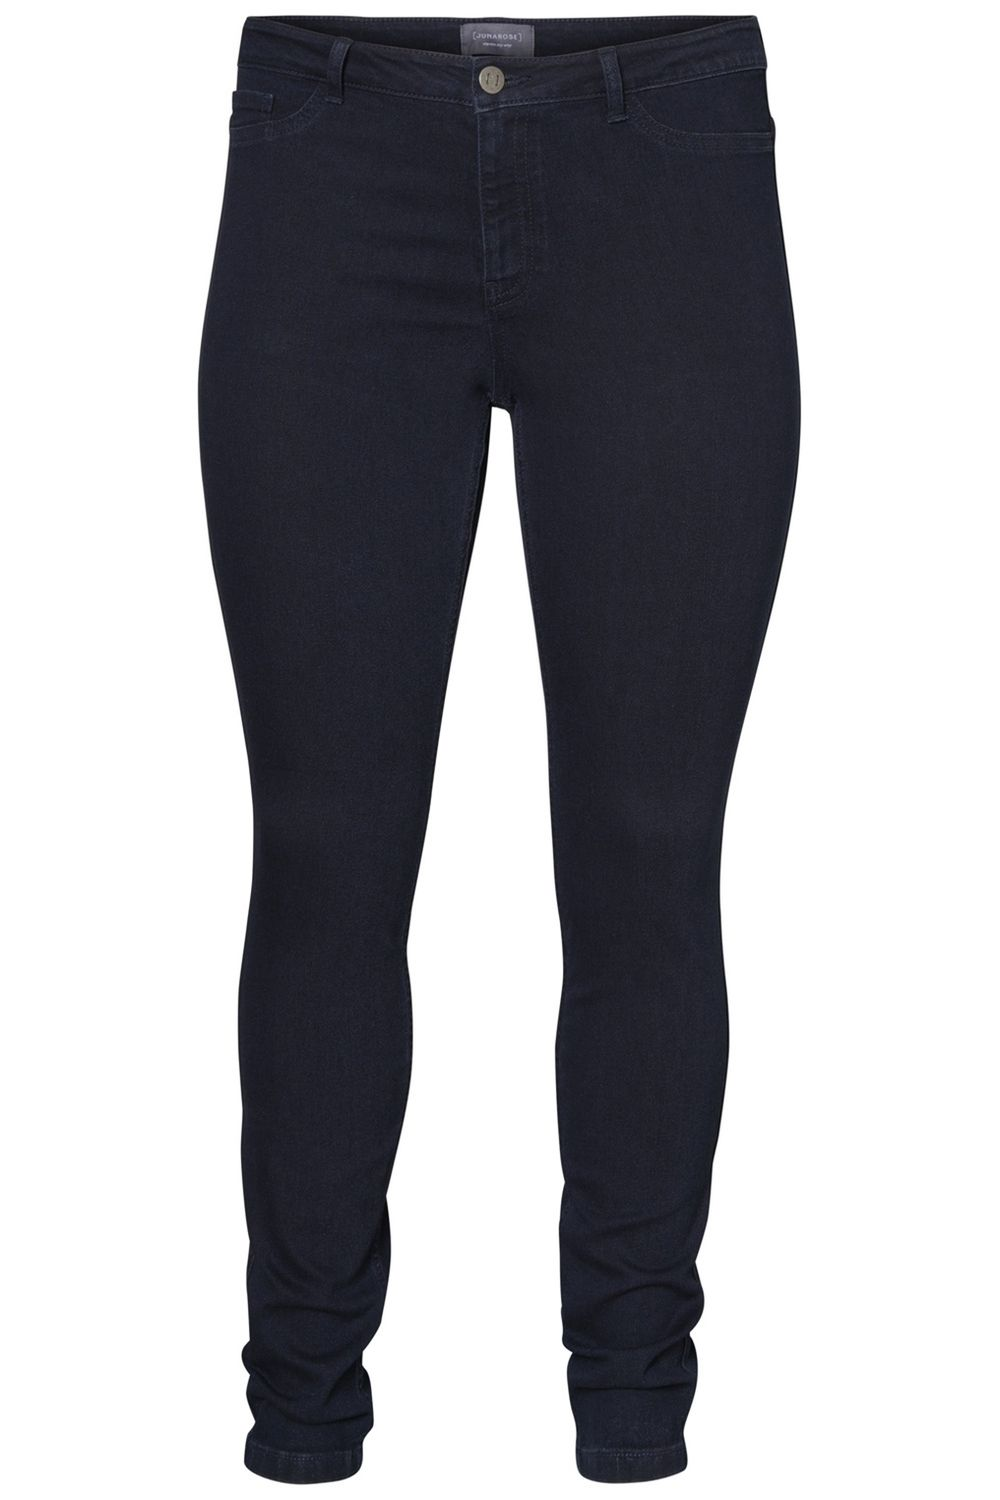 Jeans broek QUEEN slimfit dark denim